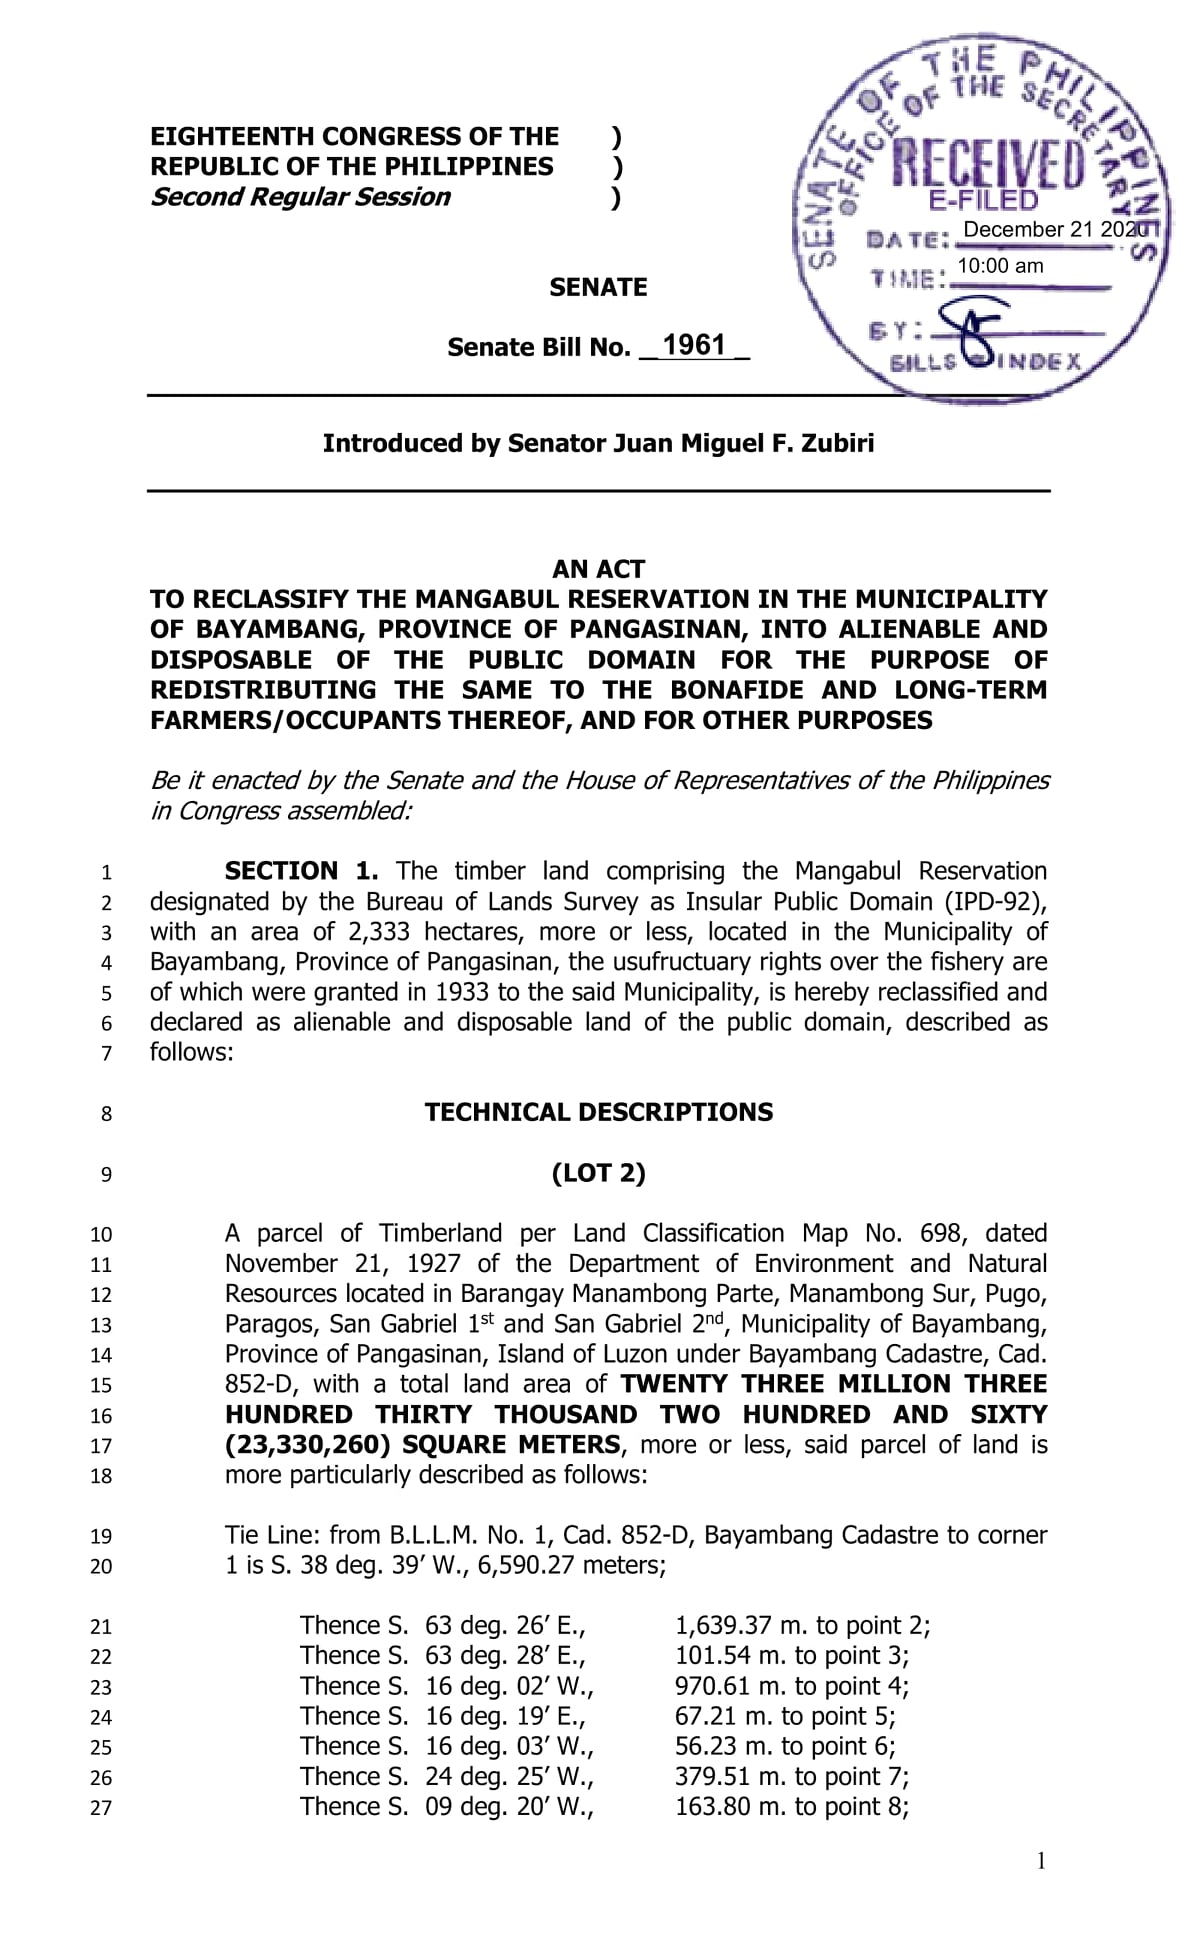 Zubiri Files Mangabul Bill in Senate